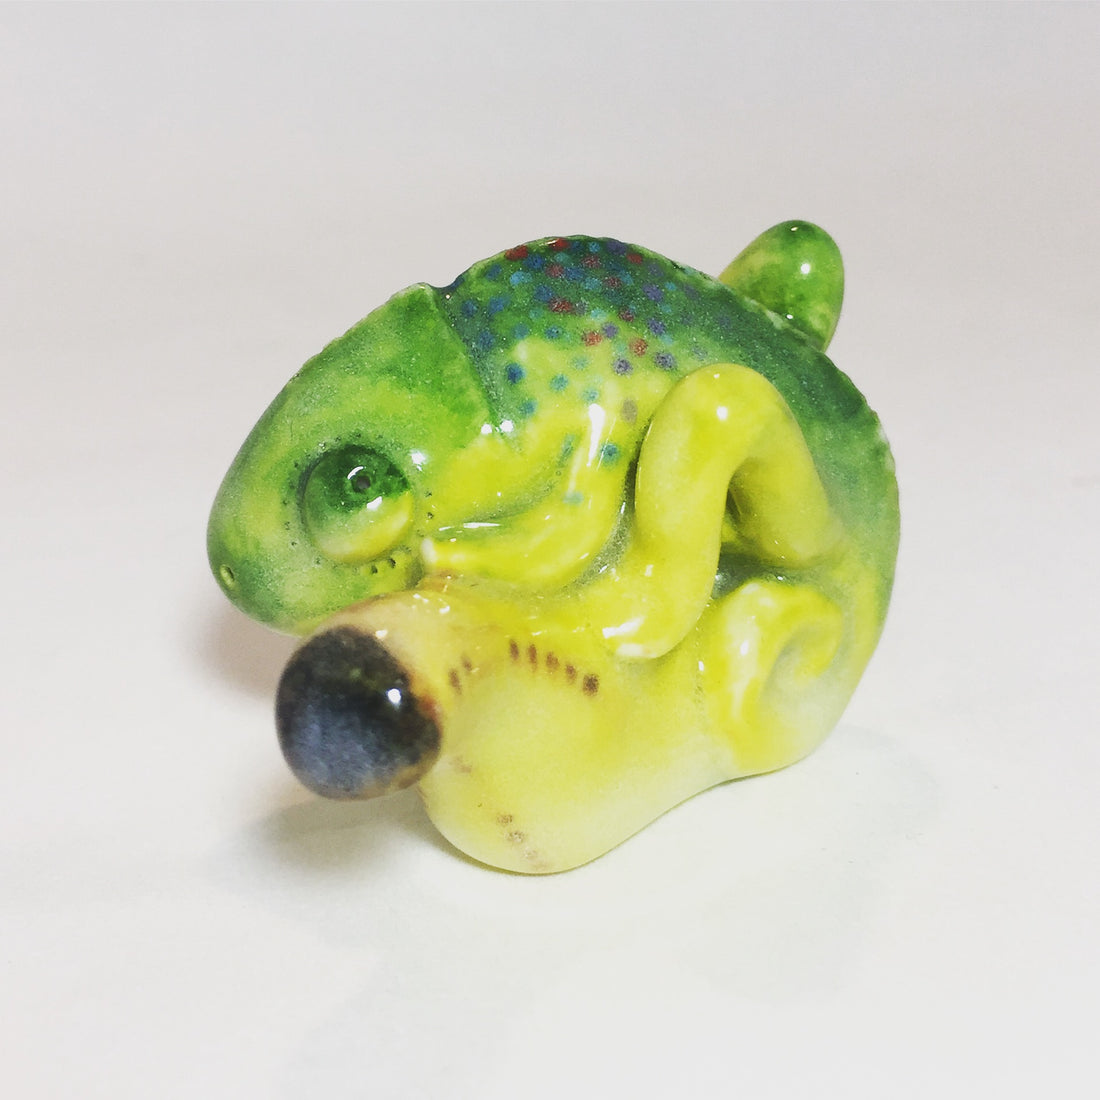 Itty Bitty Chameleon Chillin' on a Banana Spirit Animal OOAK - ShopTheMakers.com